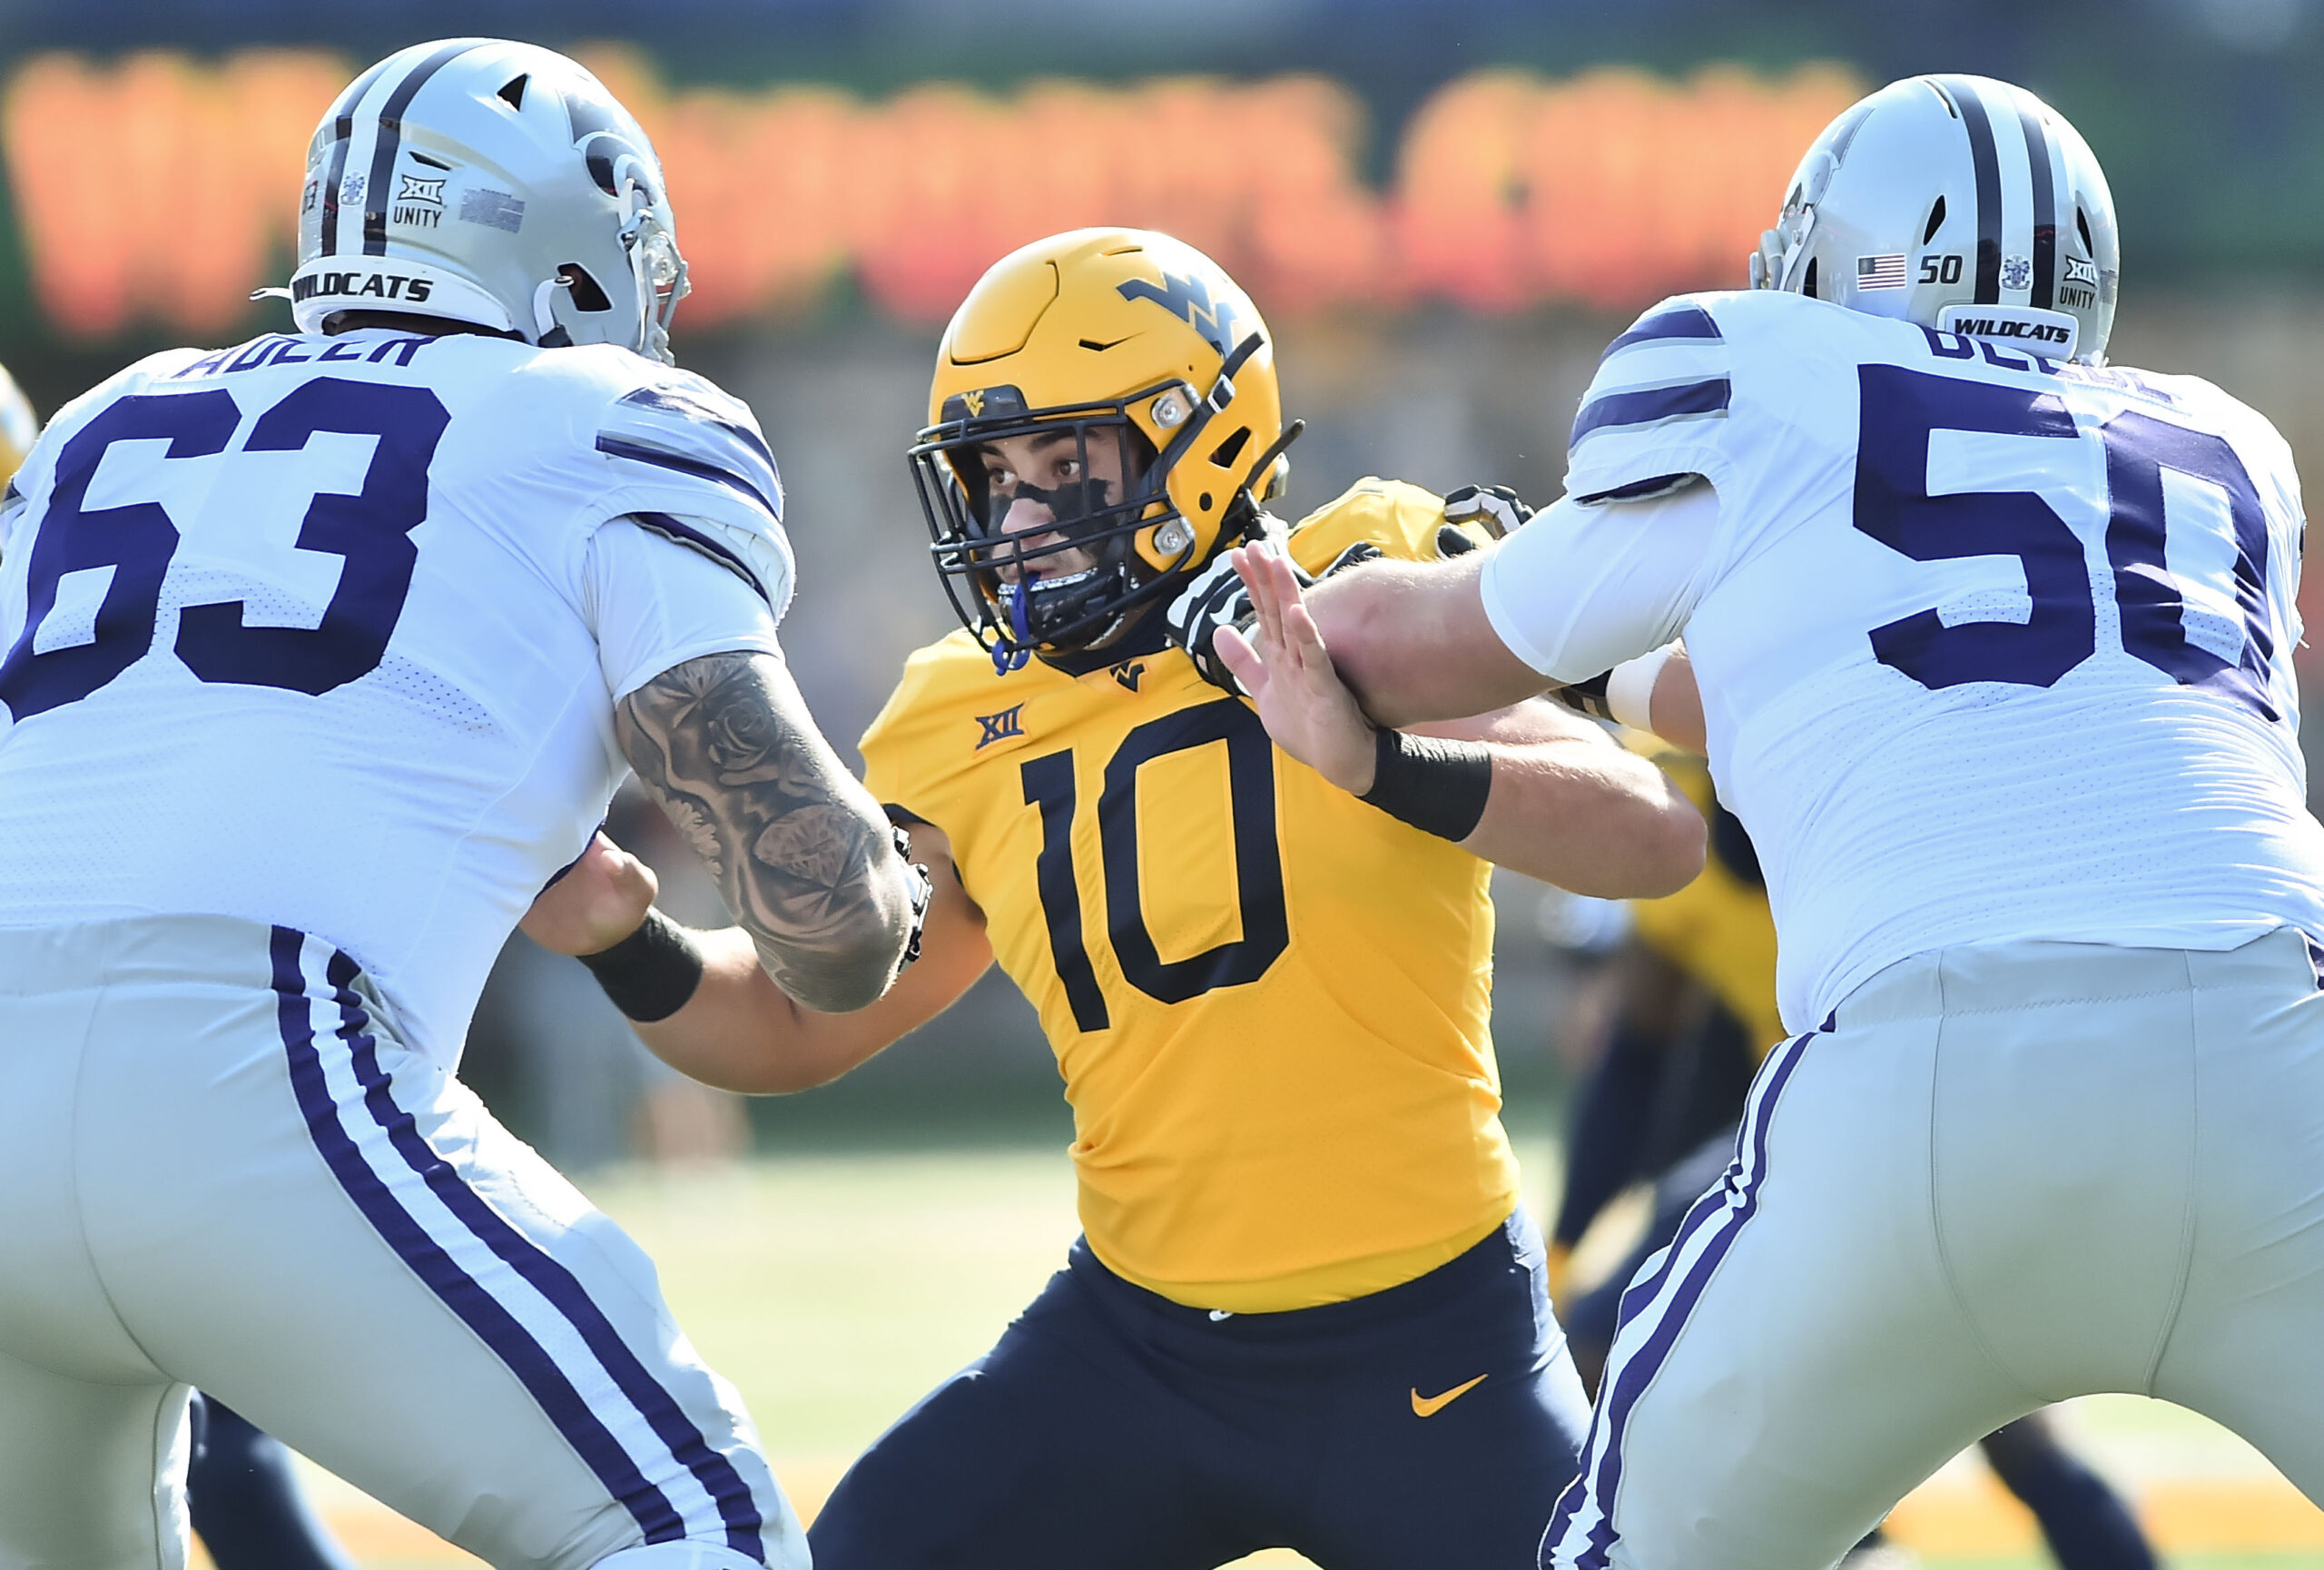 WVU has unique challenge in stopping Army's option offense in Liberty Bowl – Dominion Post